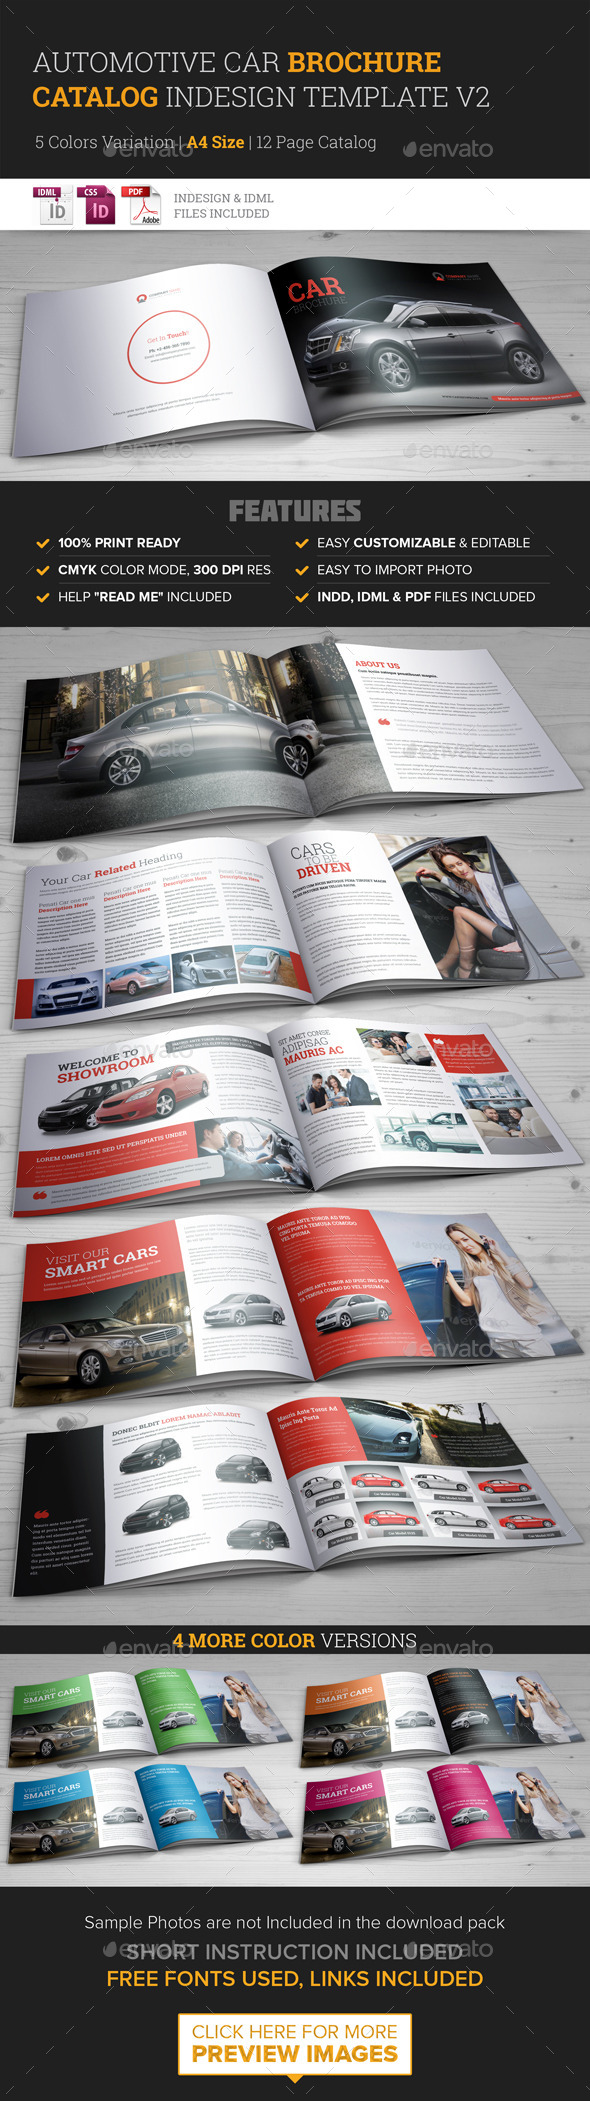 GraphicRiver Automotive Car Brochure Catalog InDesign Template 9591704